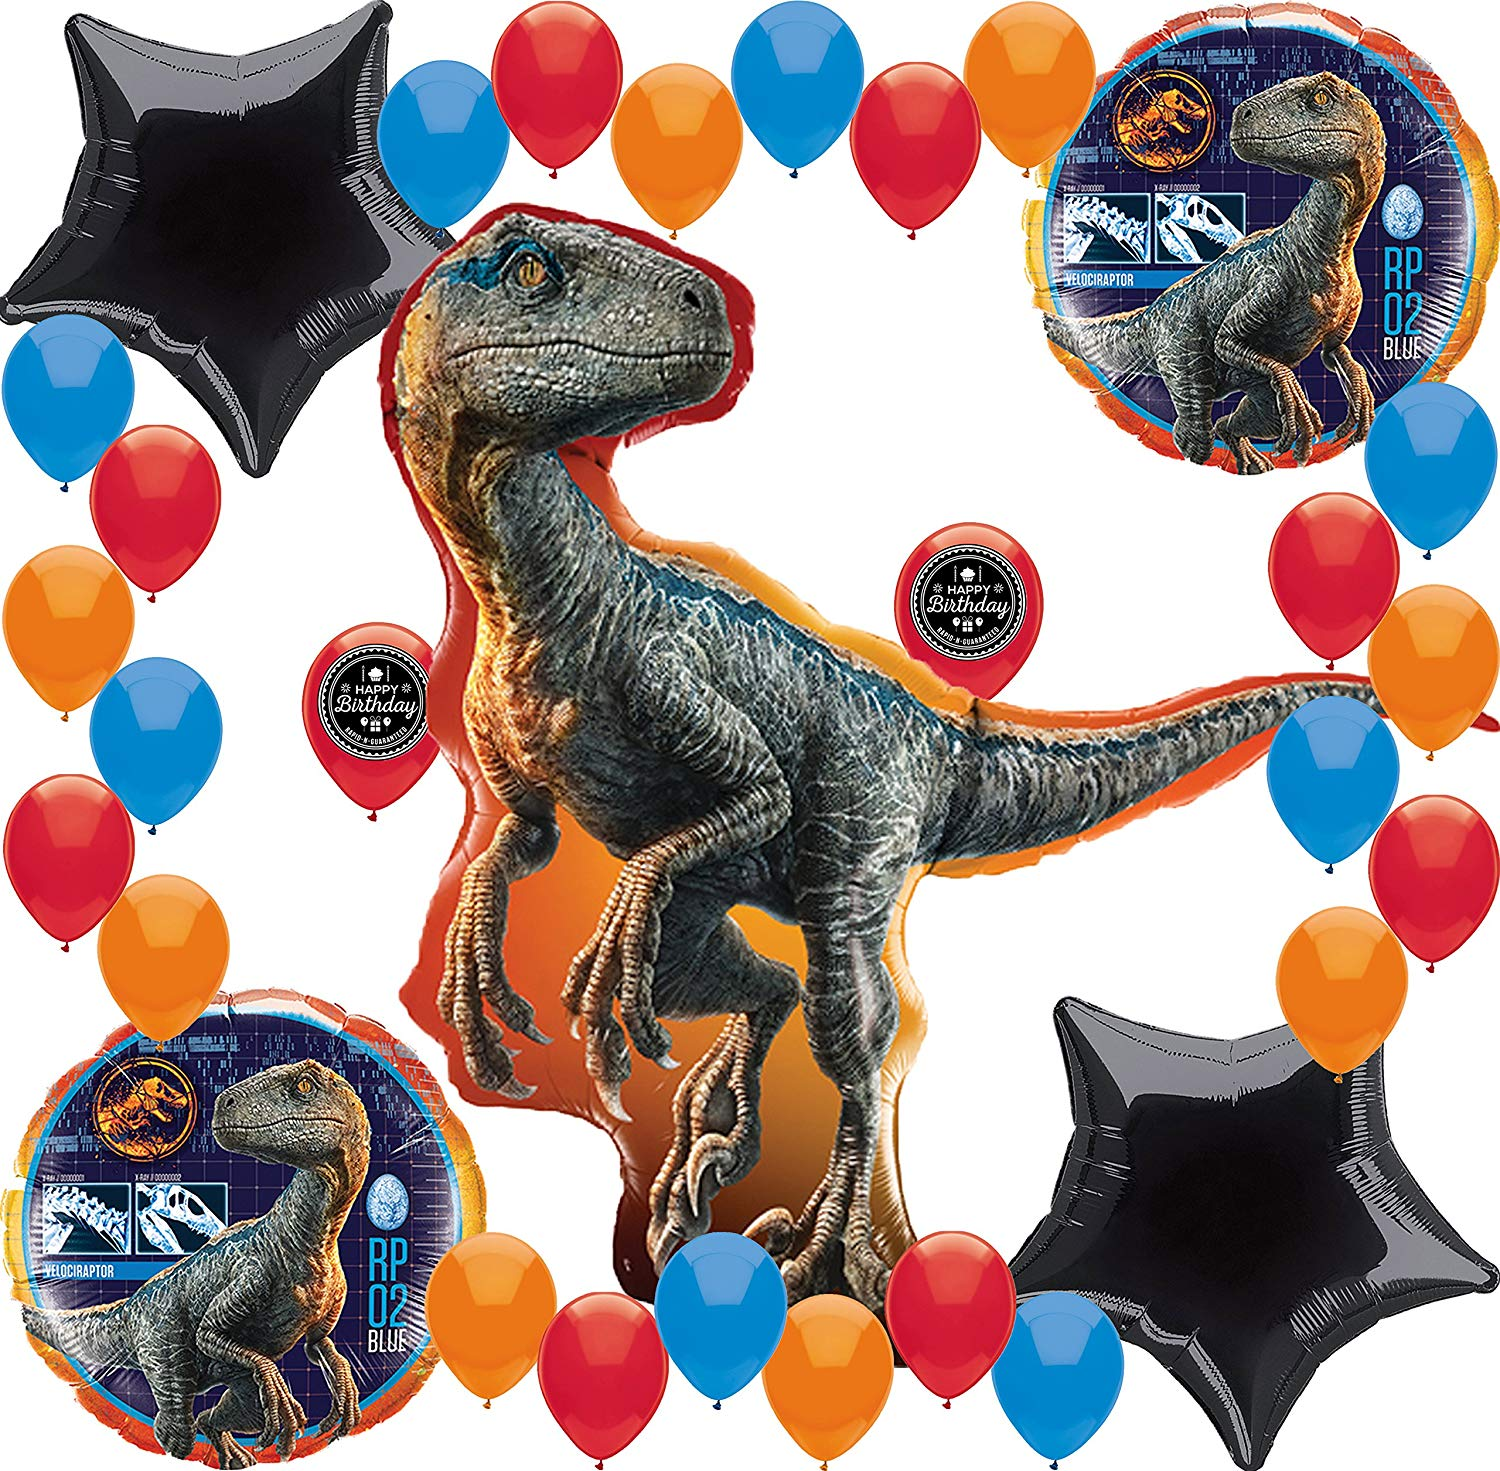 Buy Jurassic World School Supplies Bundle of 3 Items: 1